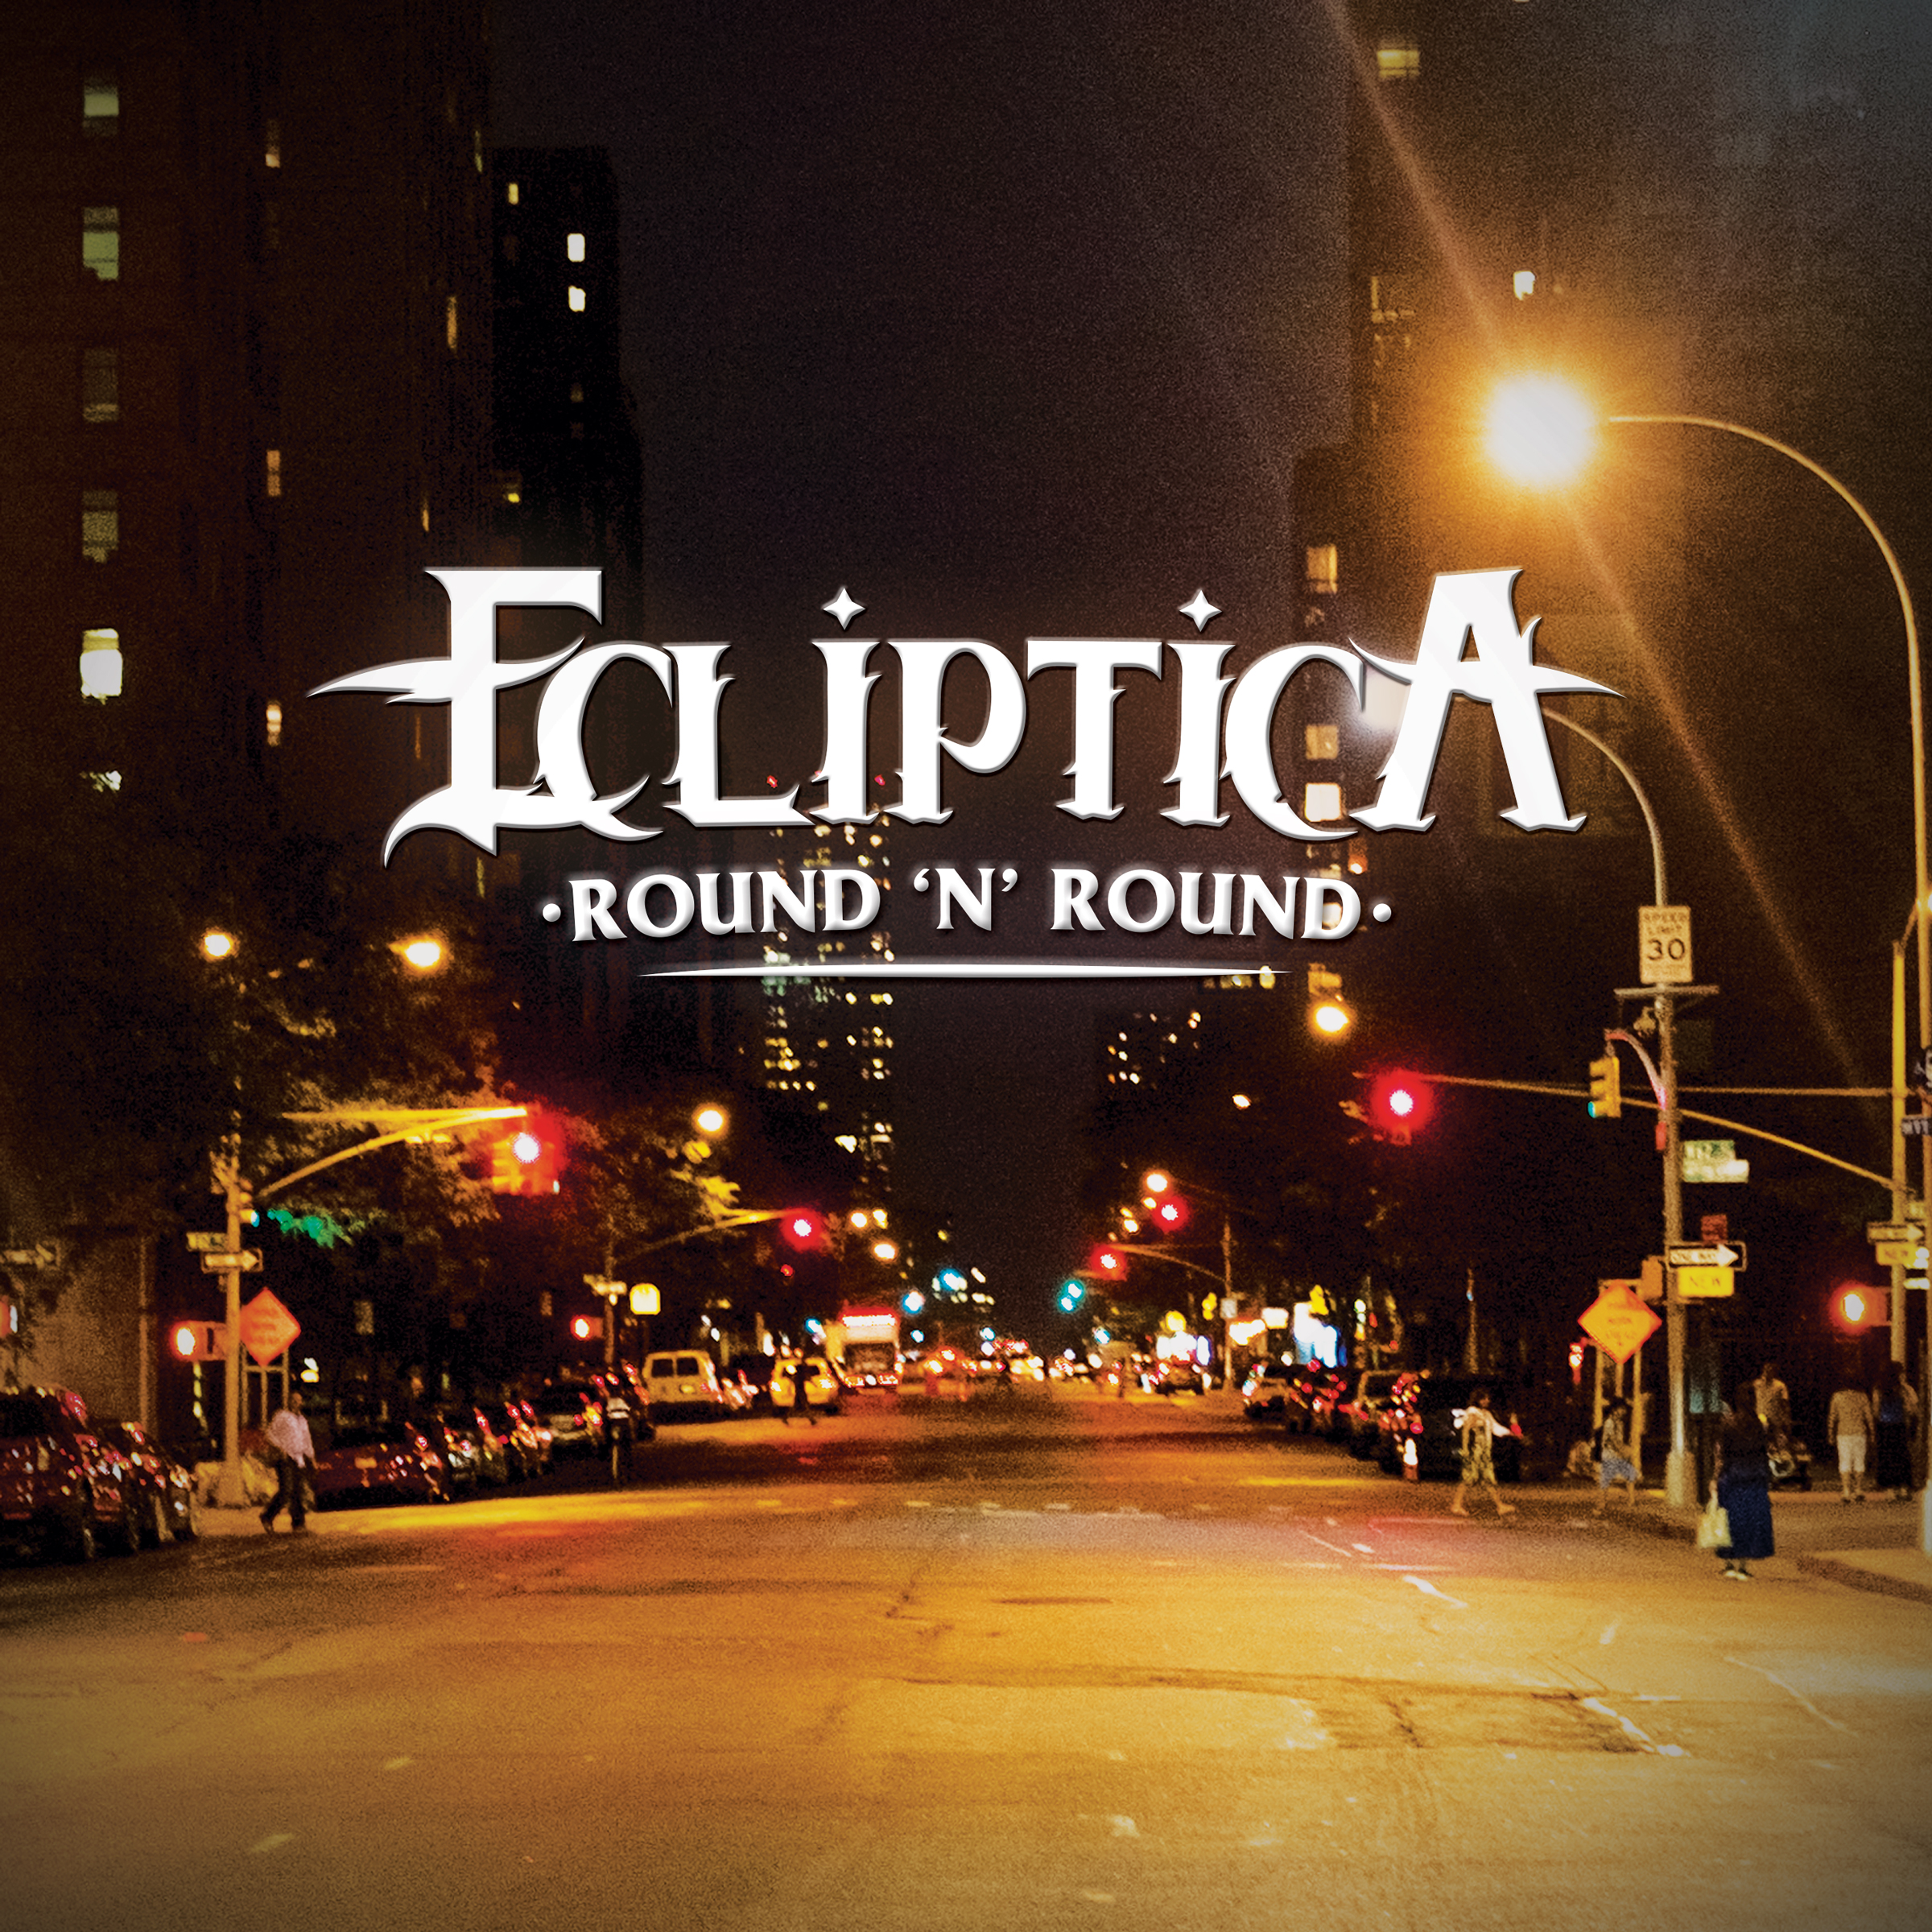 ECLIPTICA - Round 'n' Round // Single, 2015/10/27 // EAN: 9008798193561